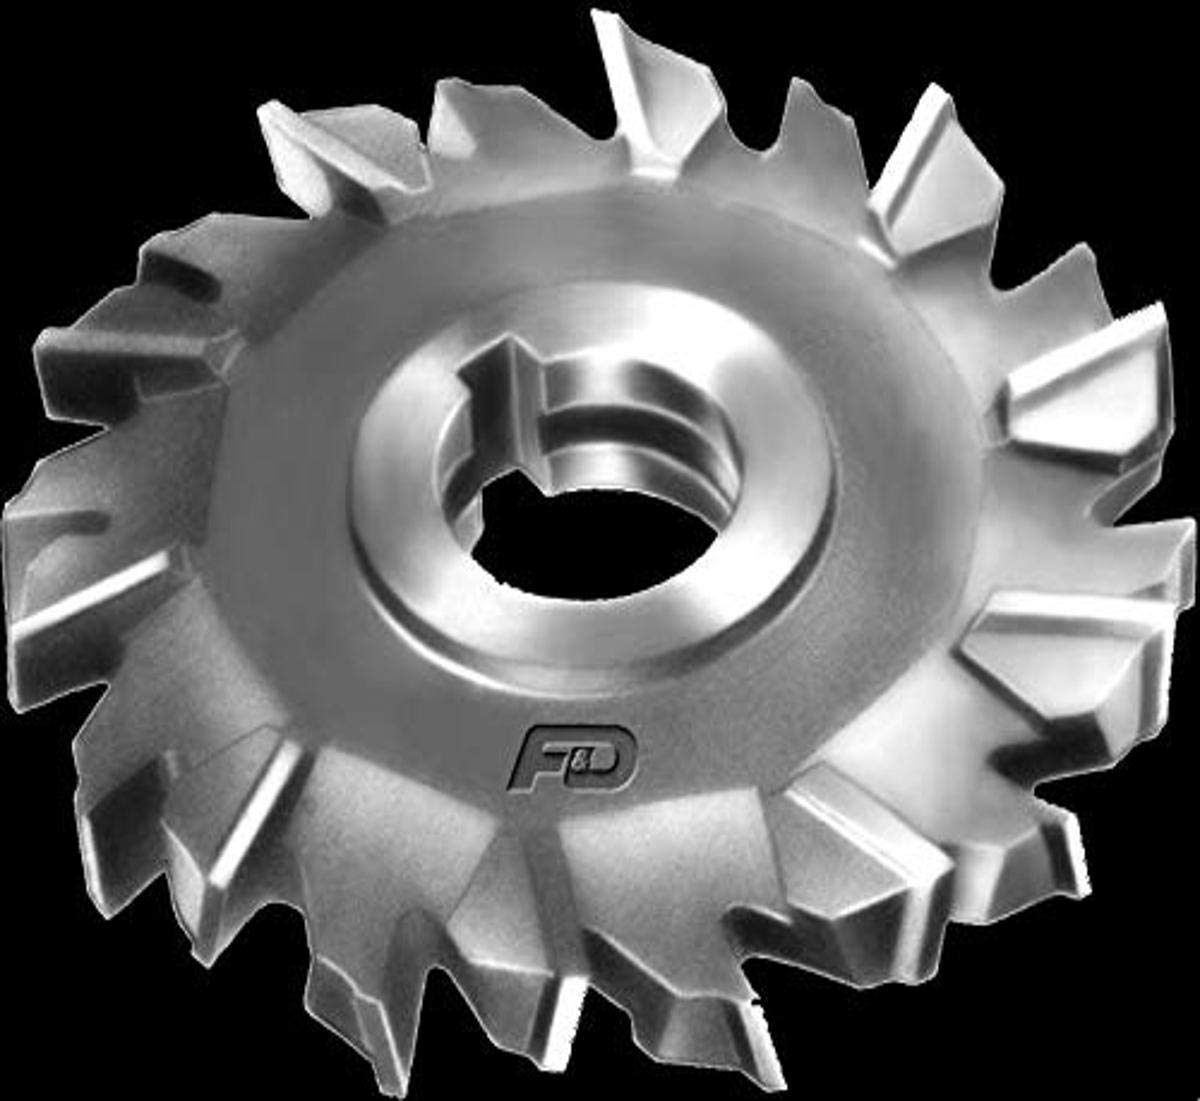 High Speed Steel 6 Diameter 1 Hole Size F/&D Tool Company 11217-A7608 Staggered Tooth Side Milling Cutter 1//4 Width of Face